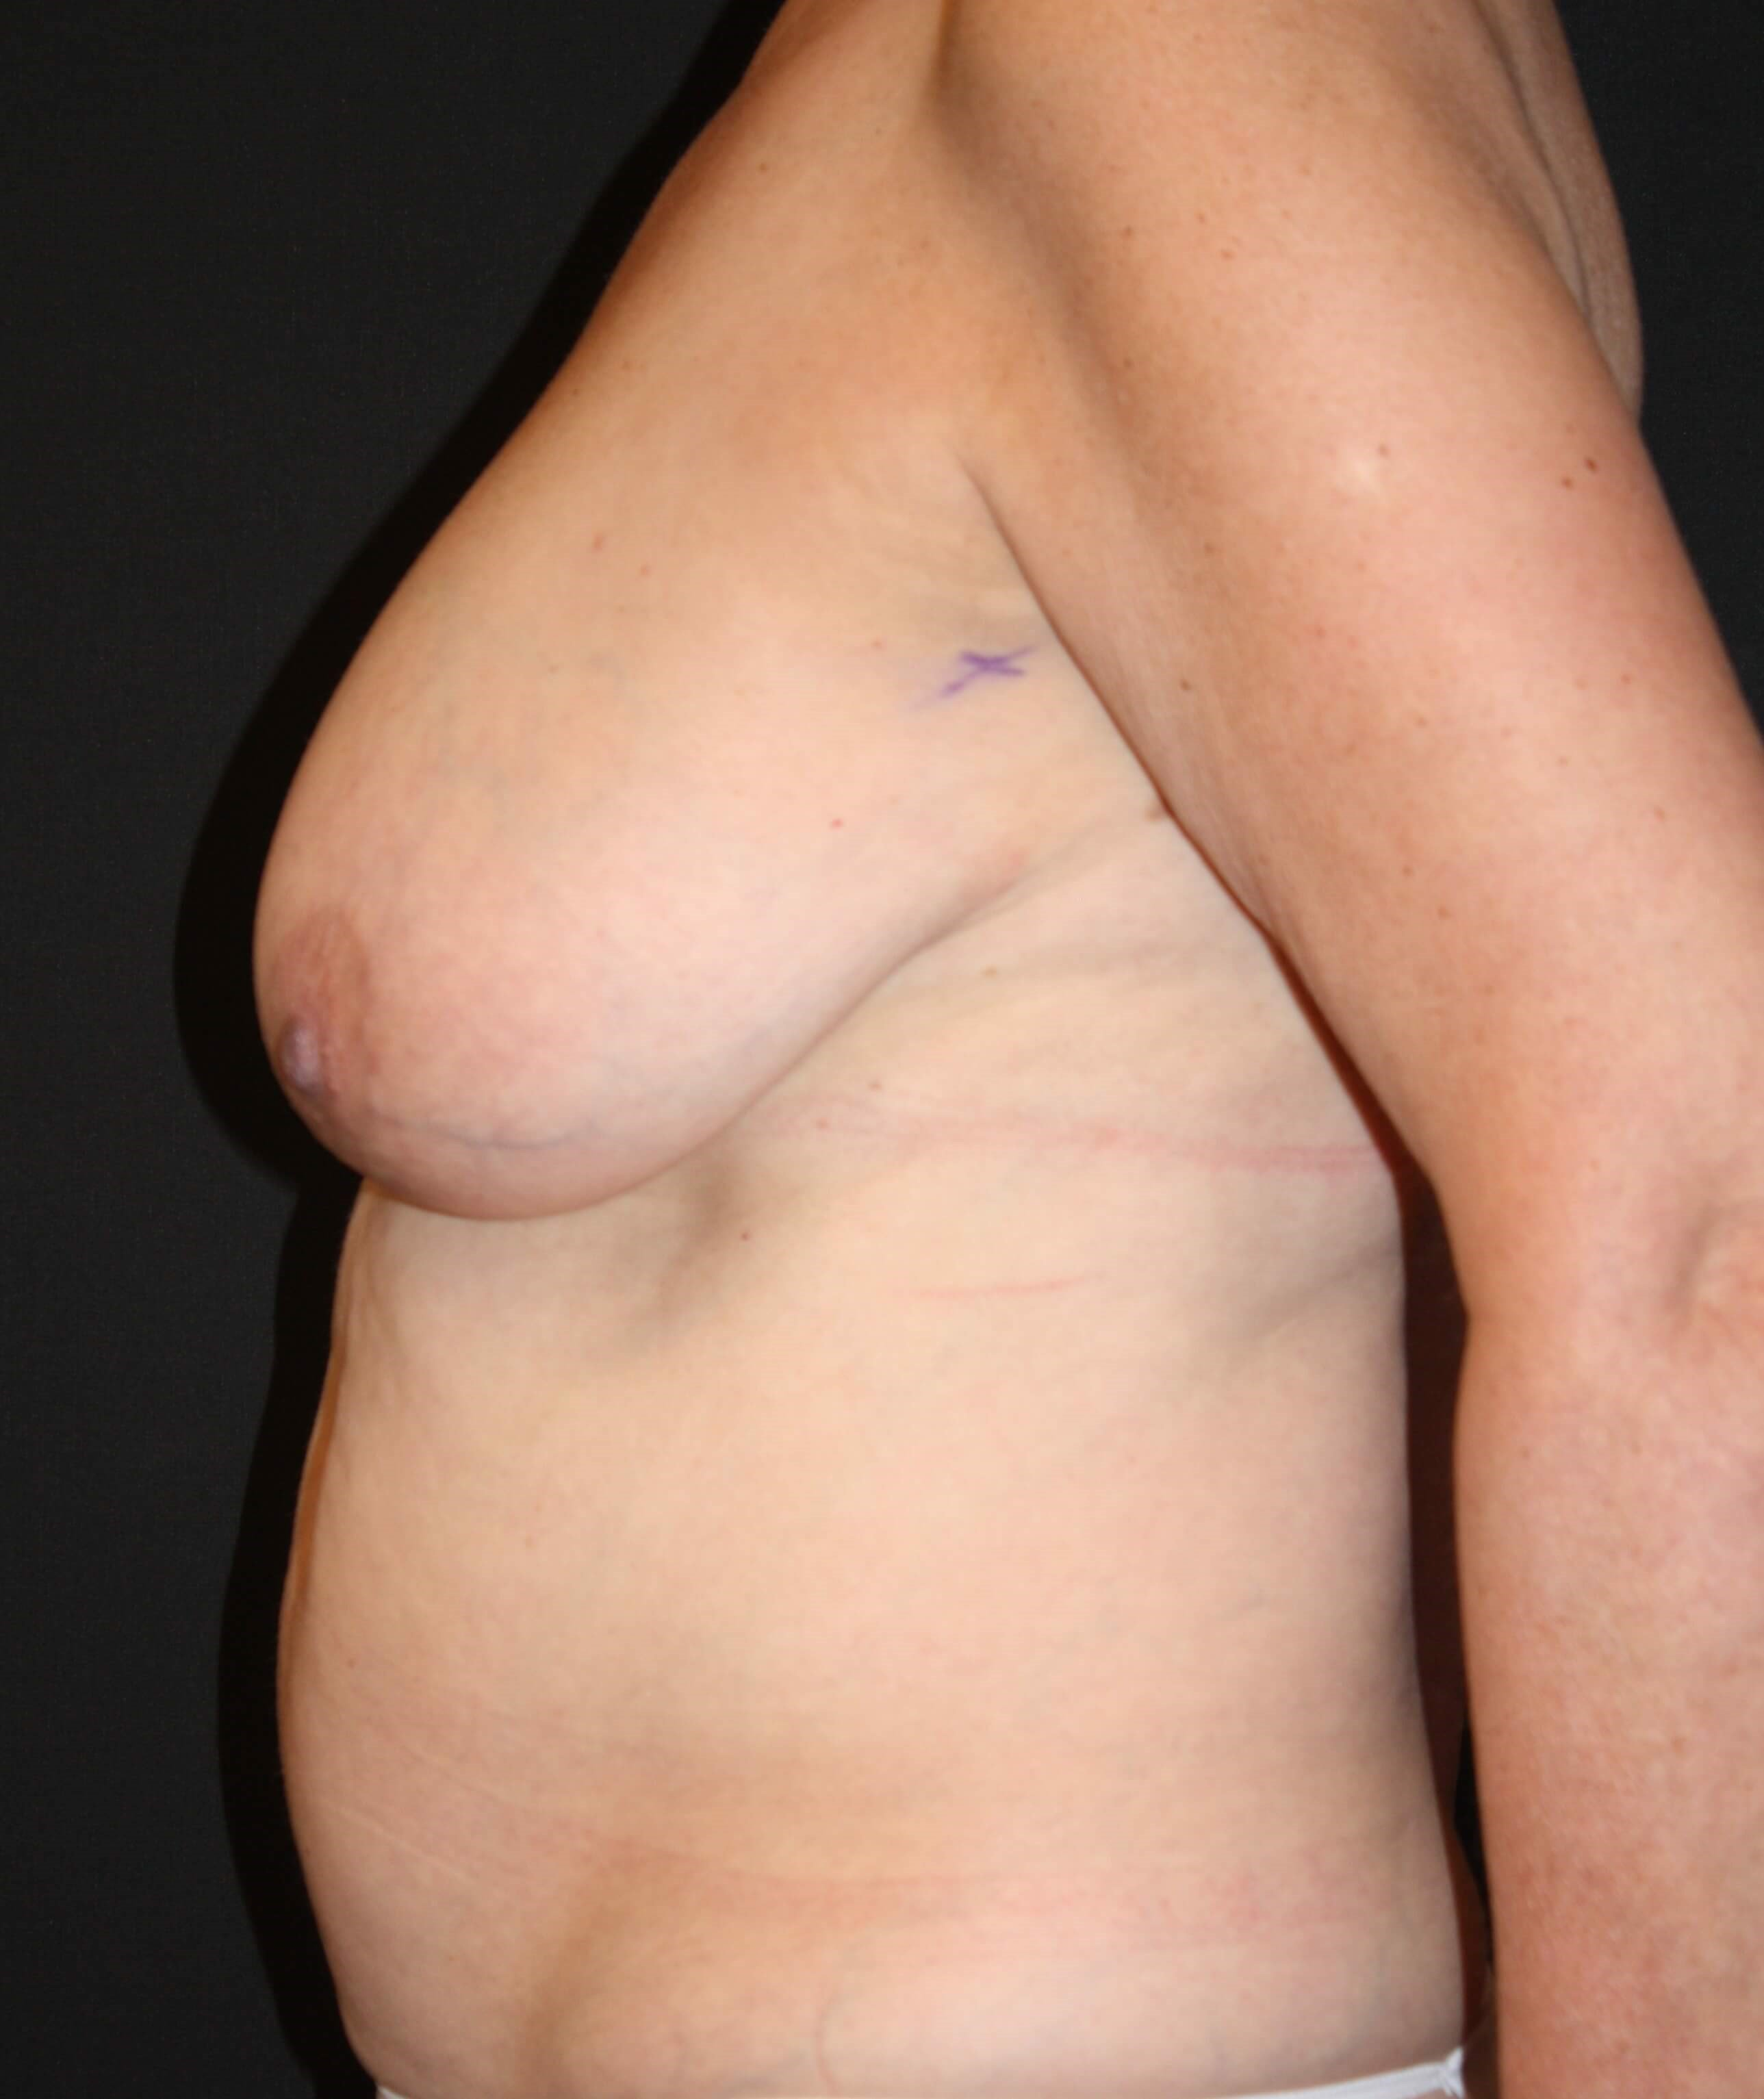 DIEP Flap Side View Before Breast Reconstruction